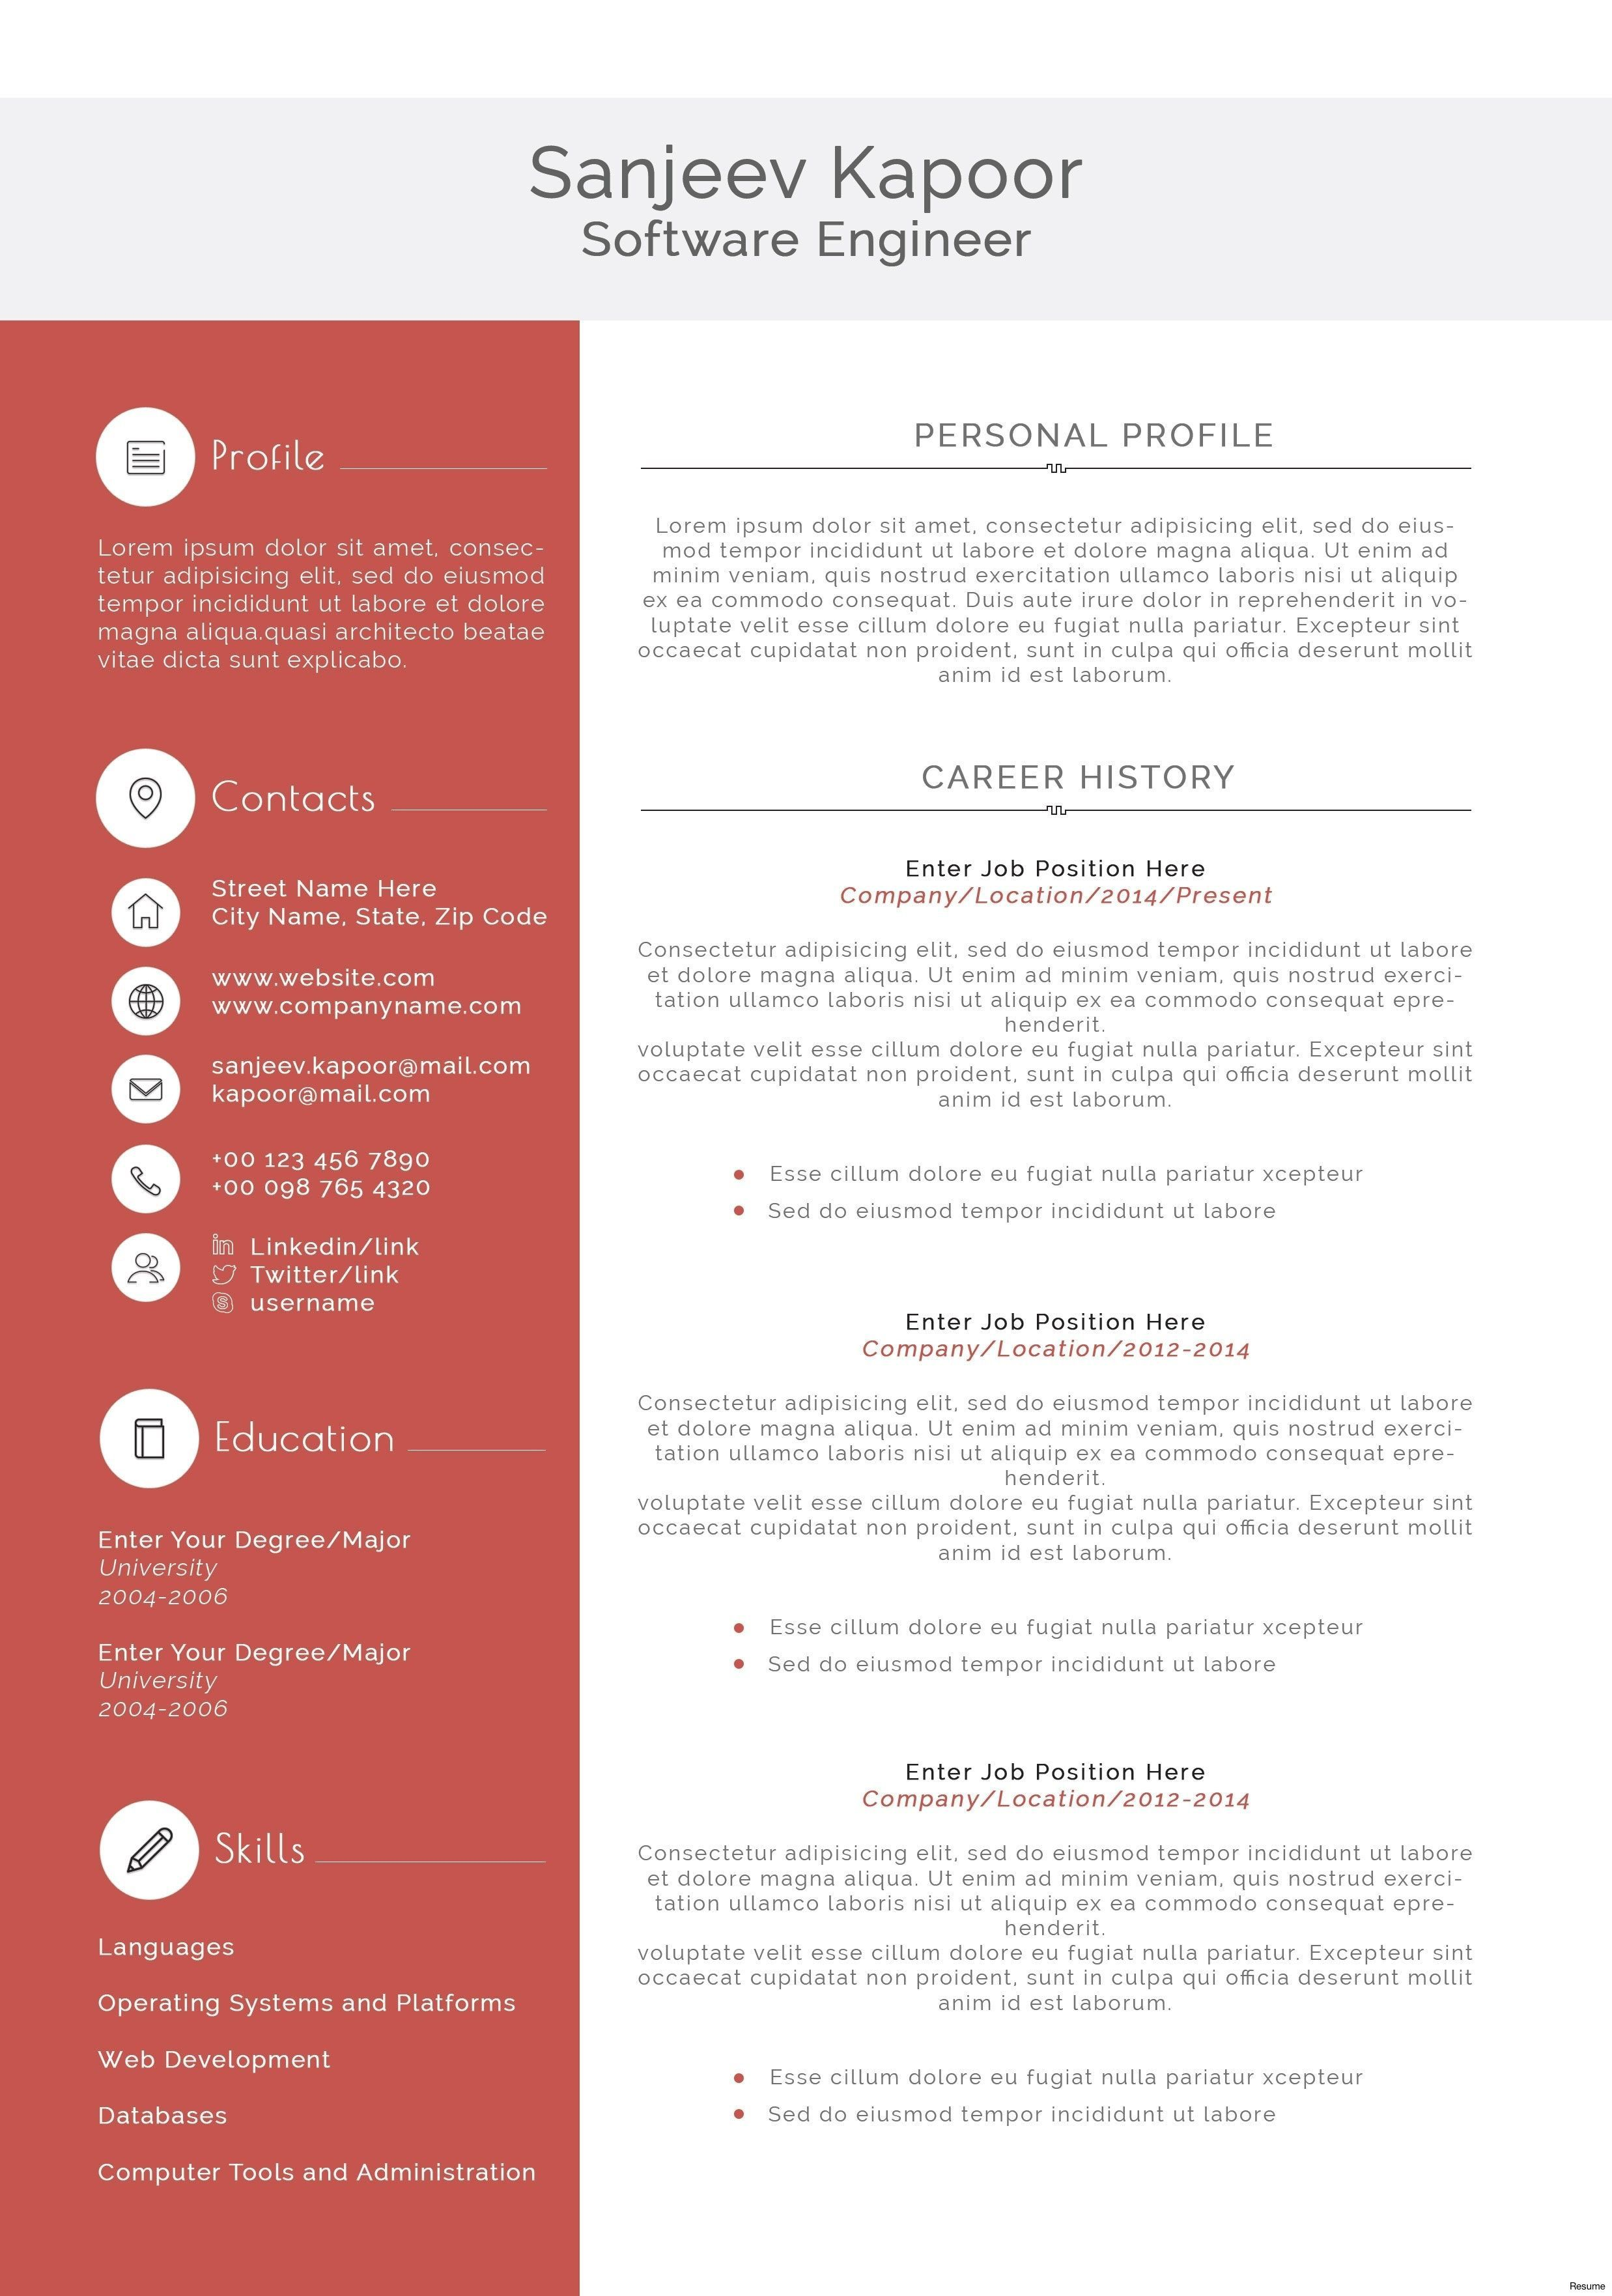 003 Stunning Software Engineer Resume Template Example  Word Format Free Download MicrosoftFull